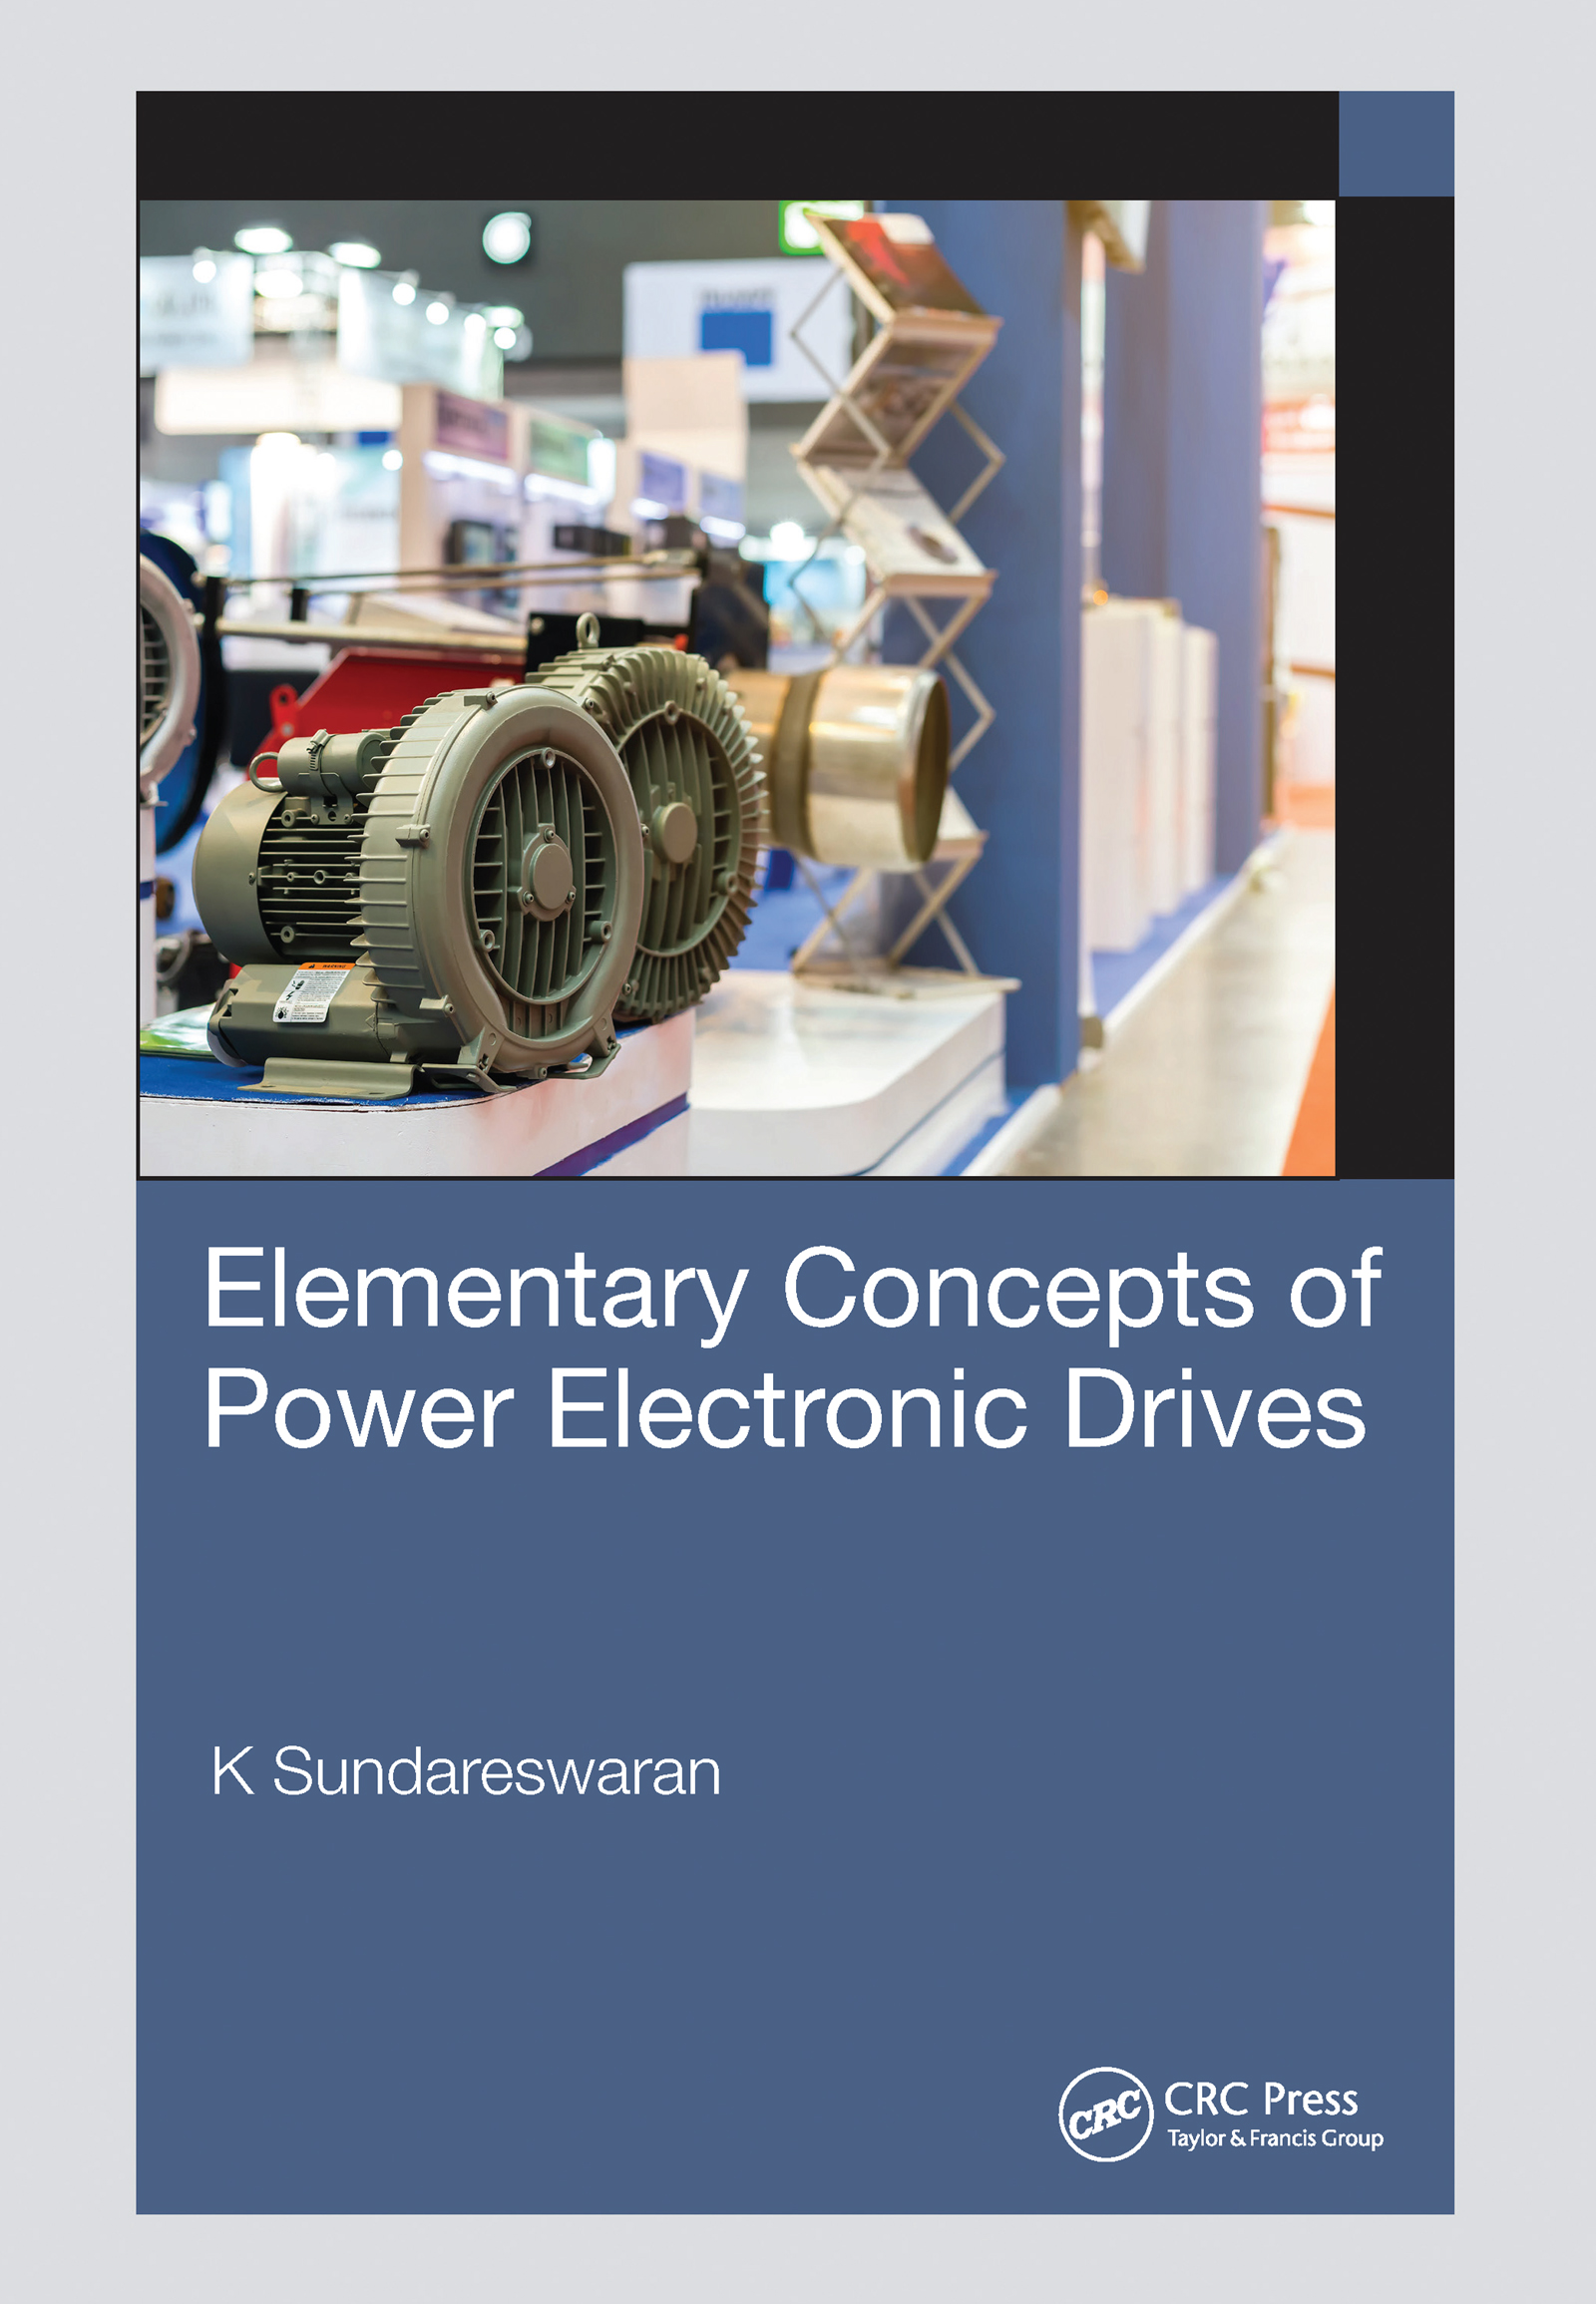 Elementary Concepts of Power Electronic Drives